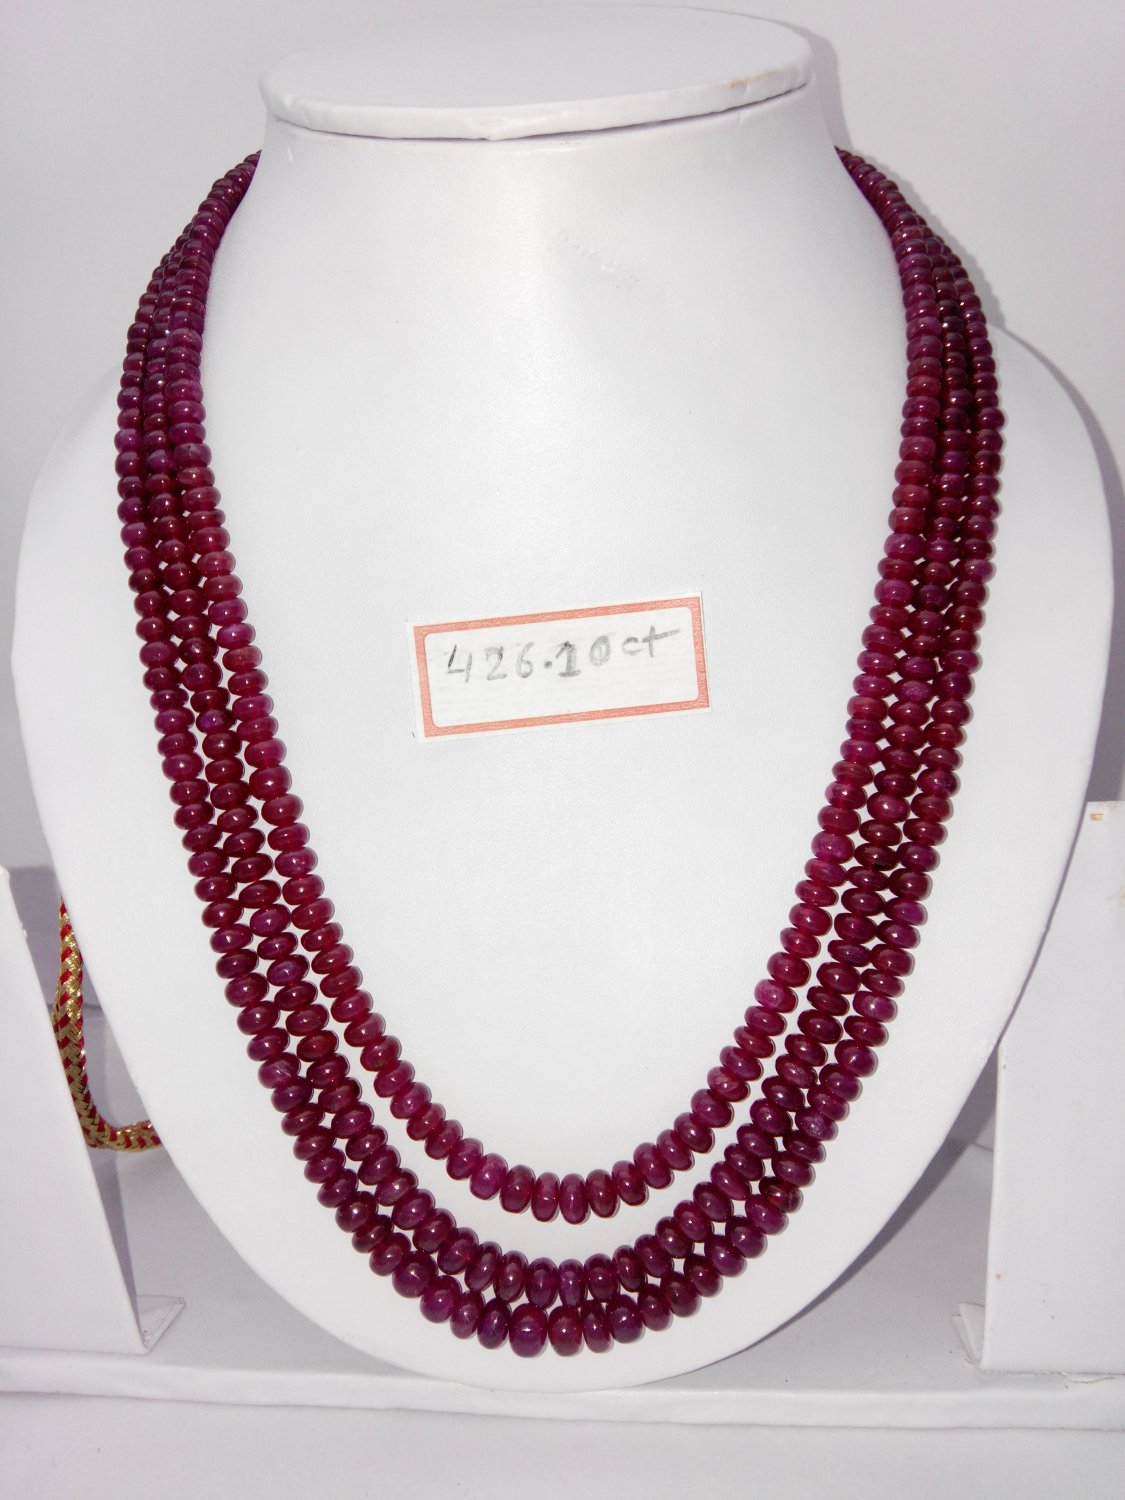 Certified Fissure Filled Ruby necklace of 426.10 cts Fancy Round Beads plane Polish